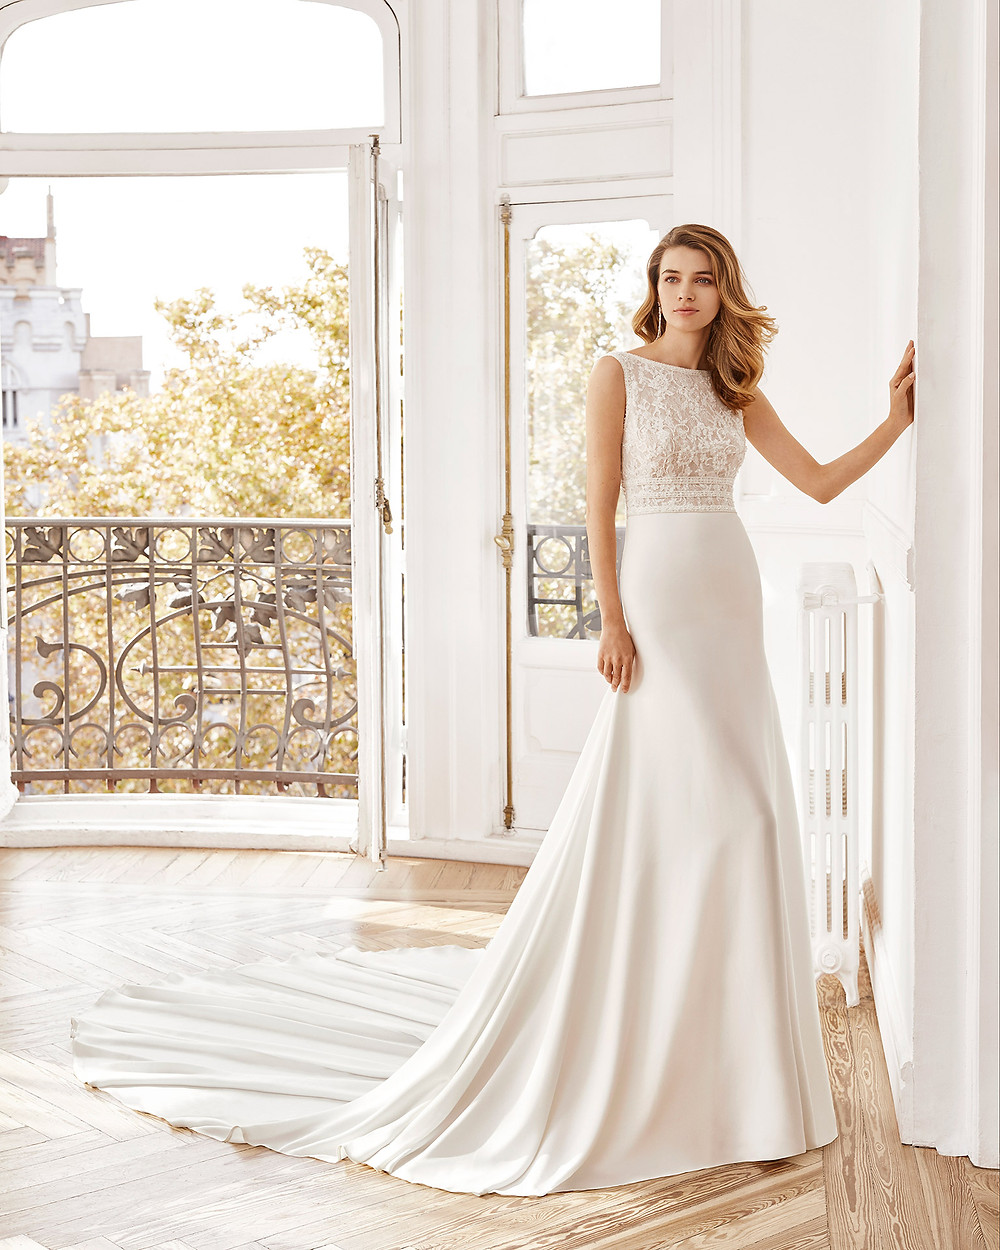 An Aire Barcelona 2020 lace and crepe A-line wedding dress with a high neckline